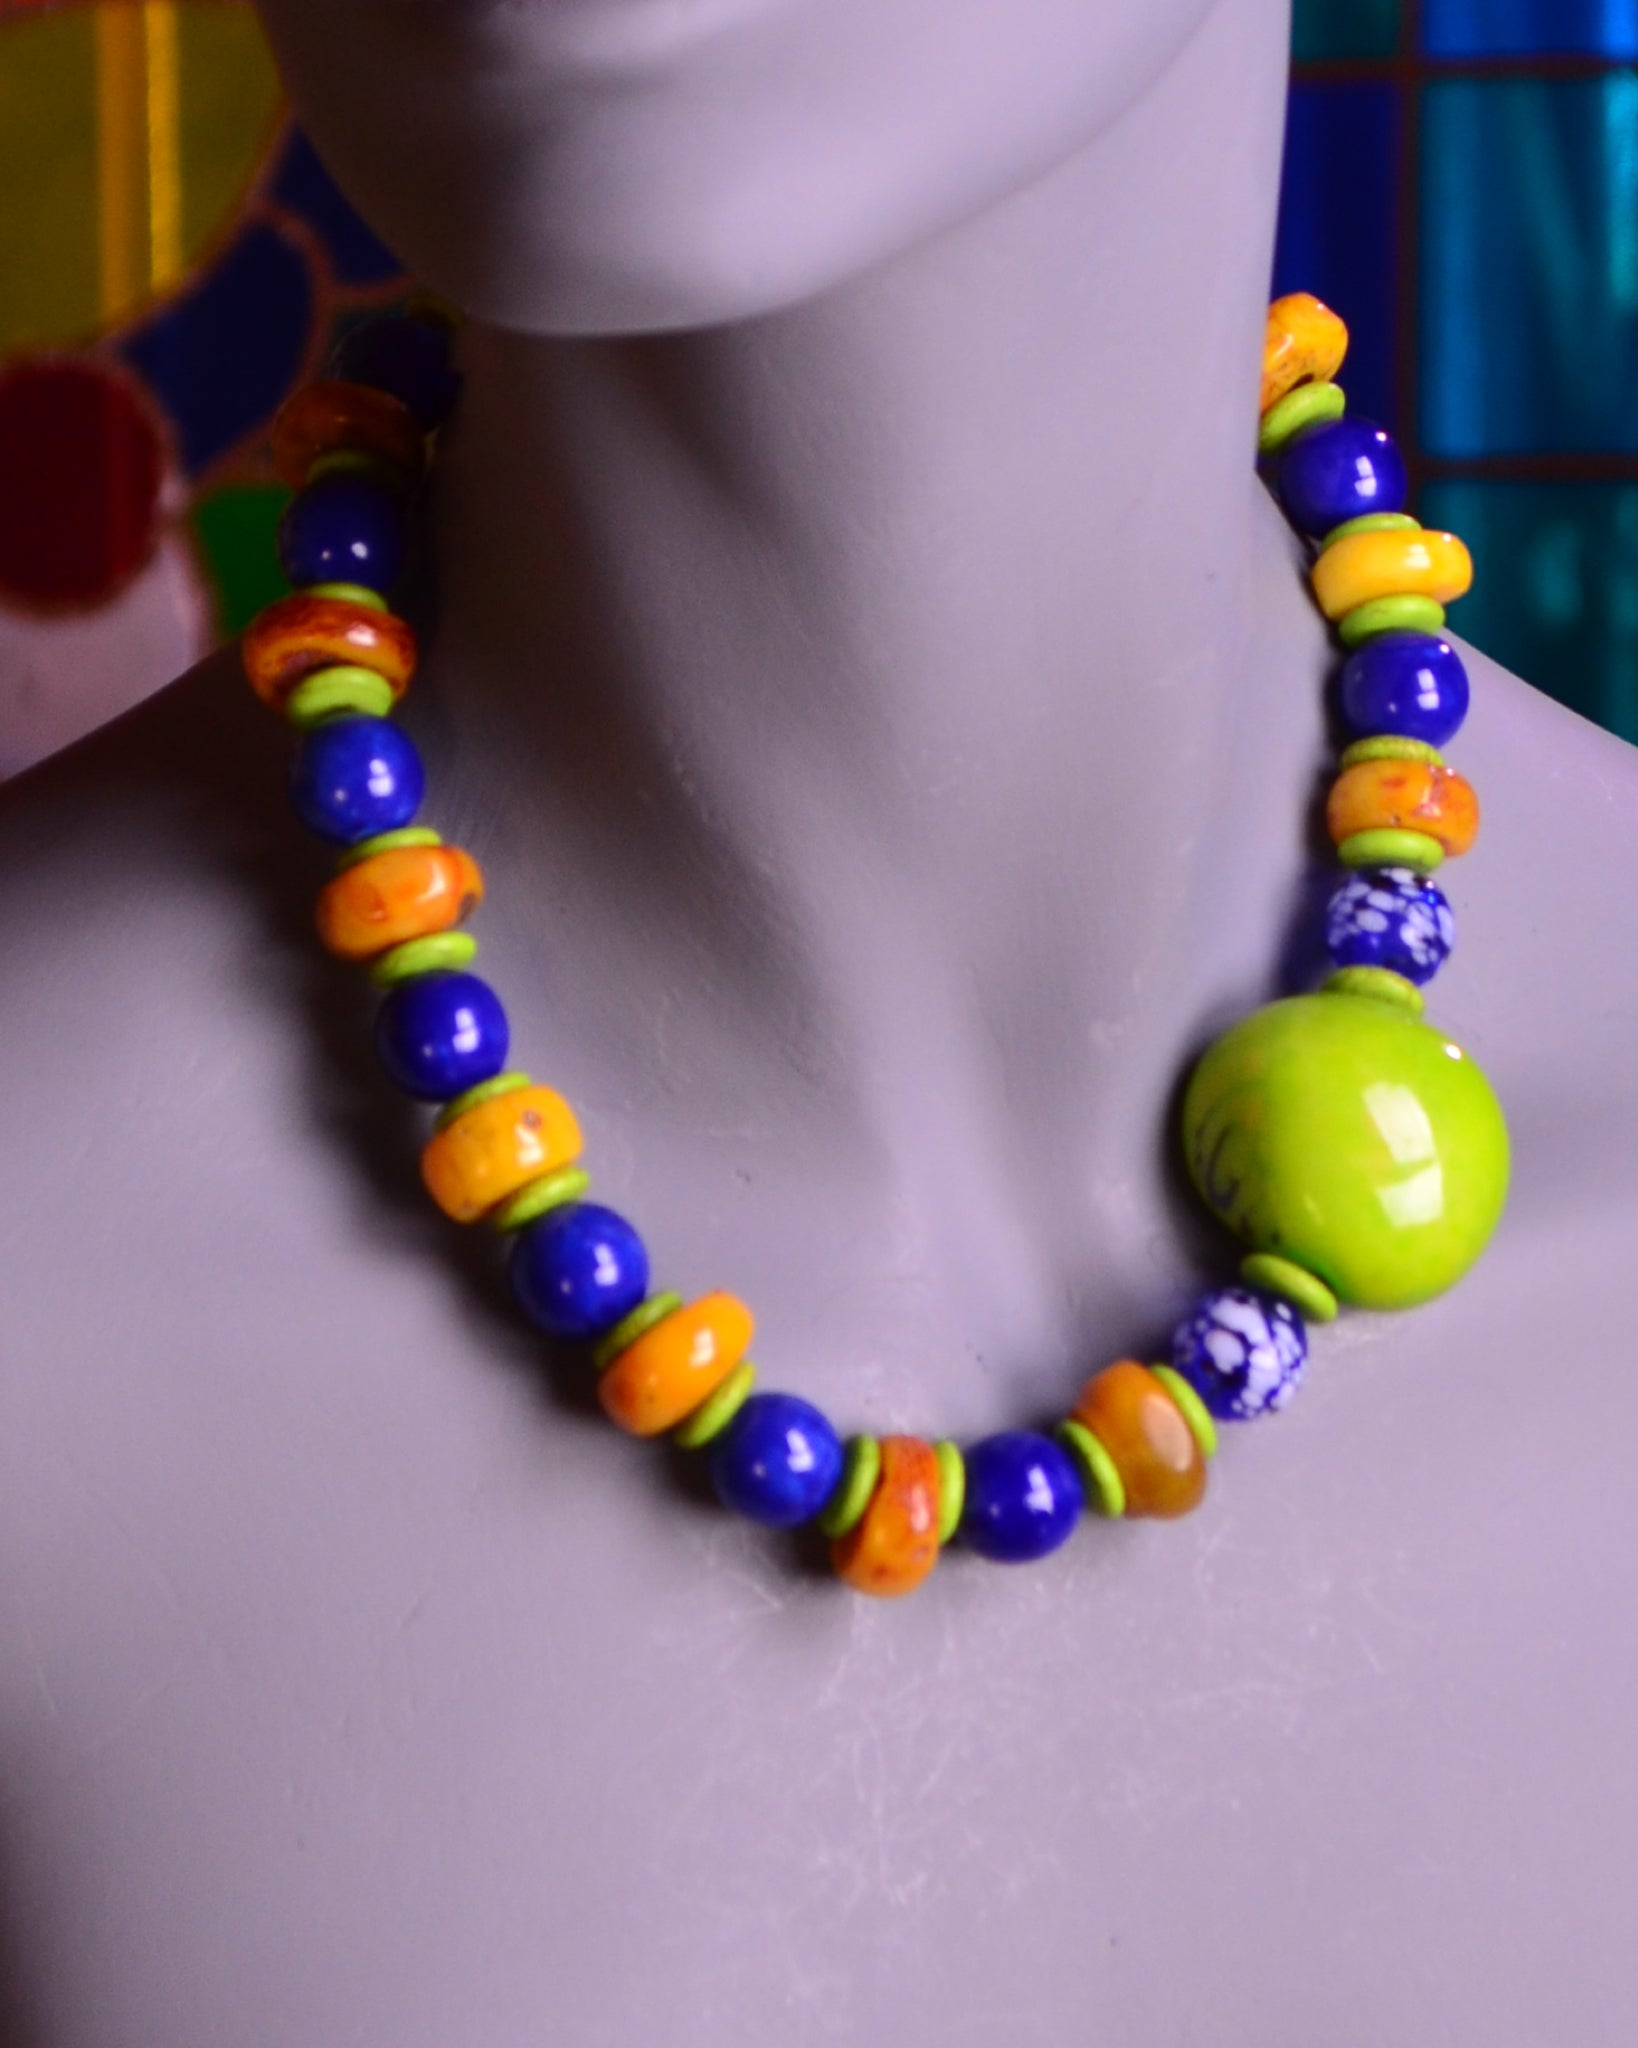 A stunning rare chartreuse Tagua nut, together with navy blue ceramic rounds and natural amber disks, makes this necklace especially exciting. Your friends will kill for it!